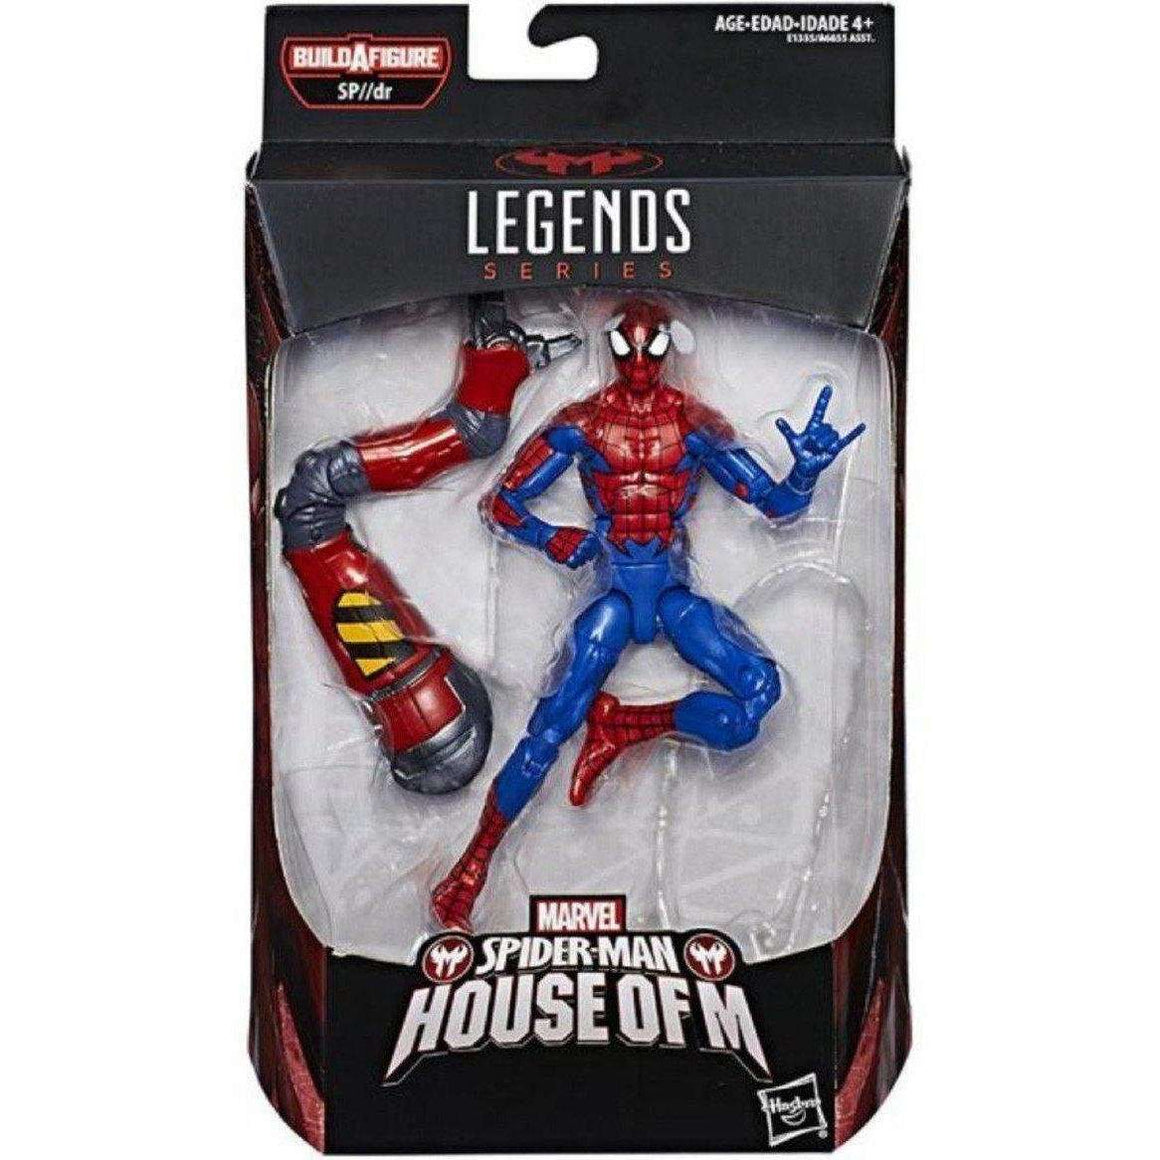 Spider-Man Marvel Legends Wave 10 (SP//DR BAF) - Spider-Man (House of M)